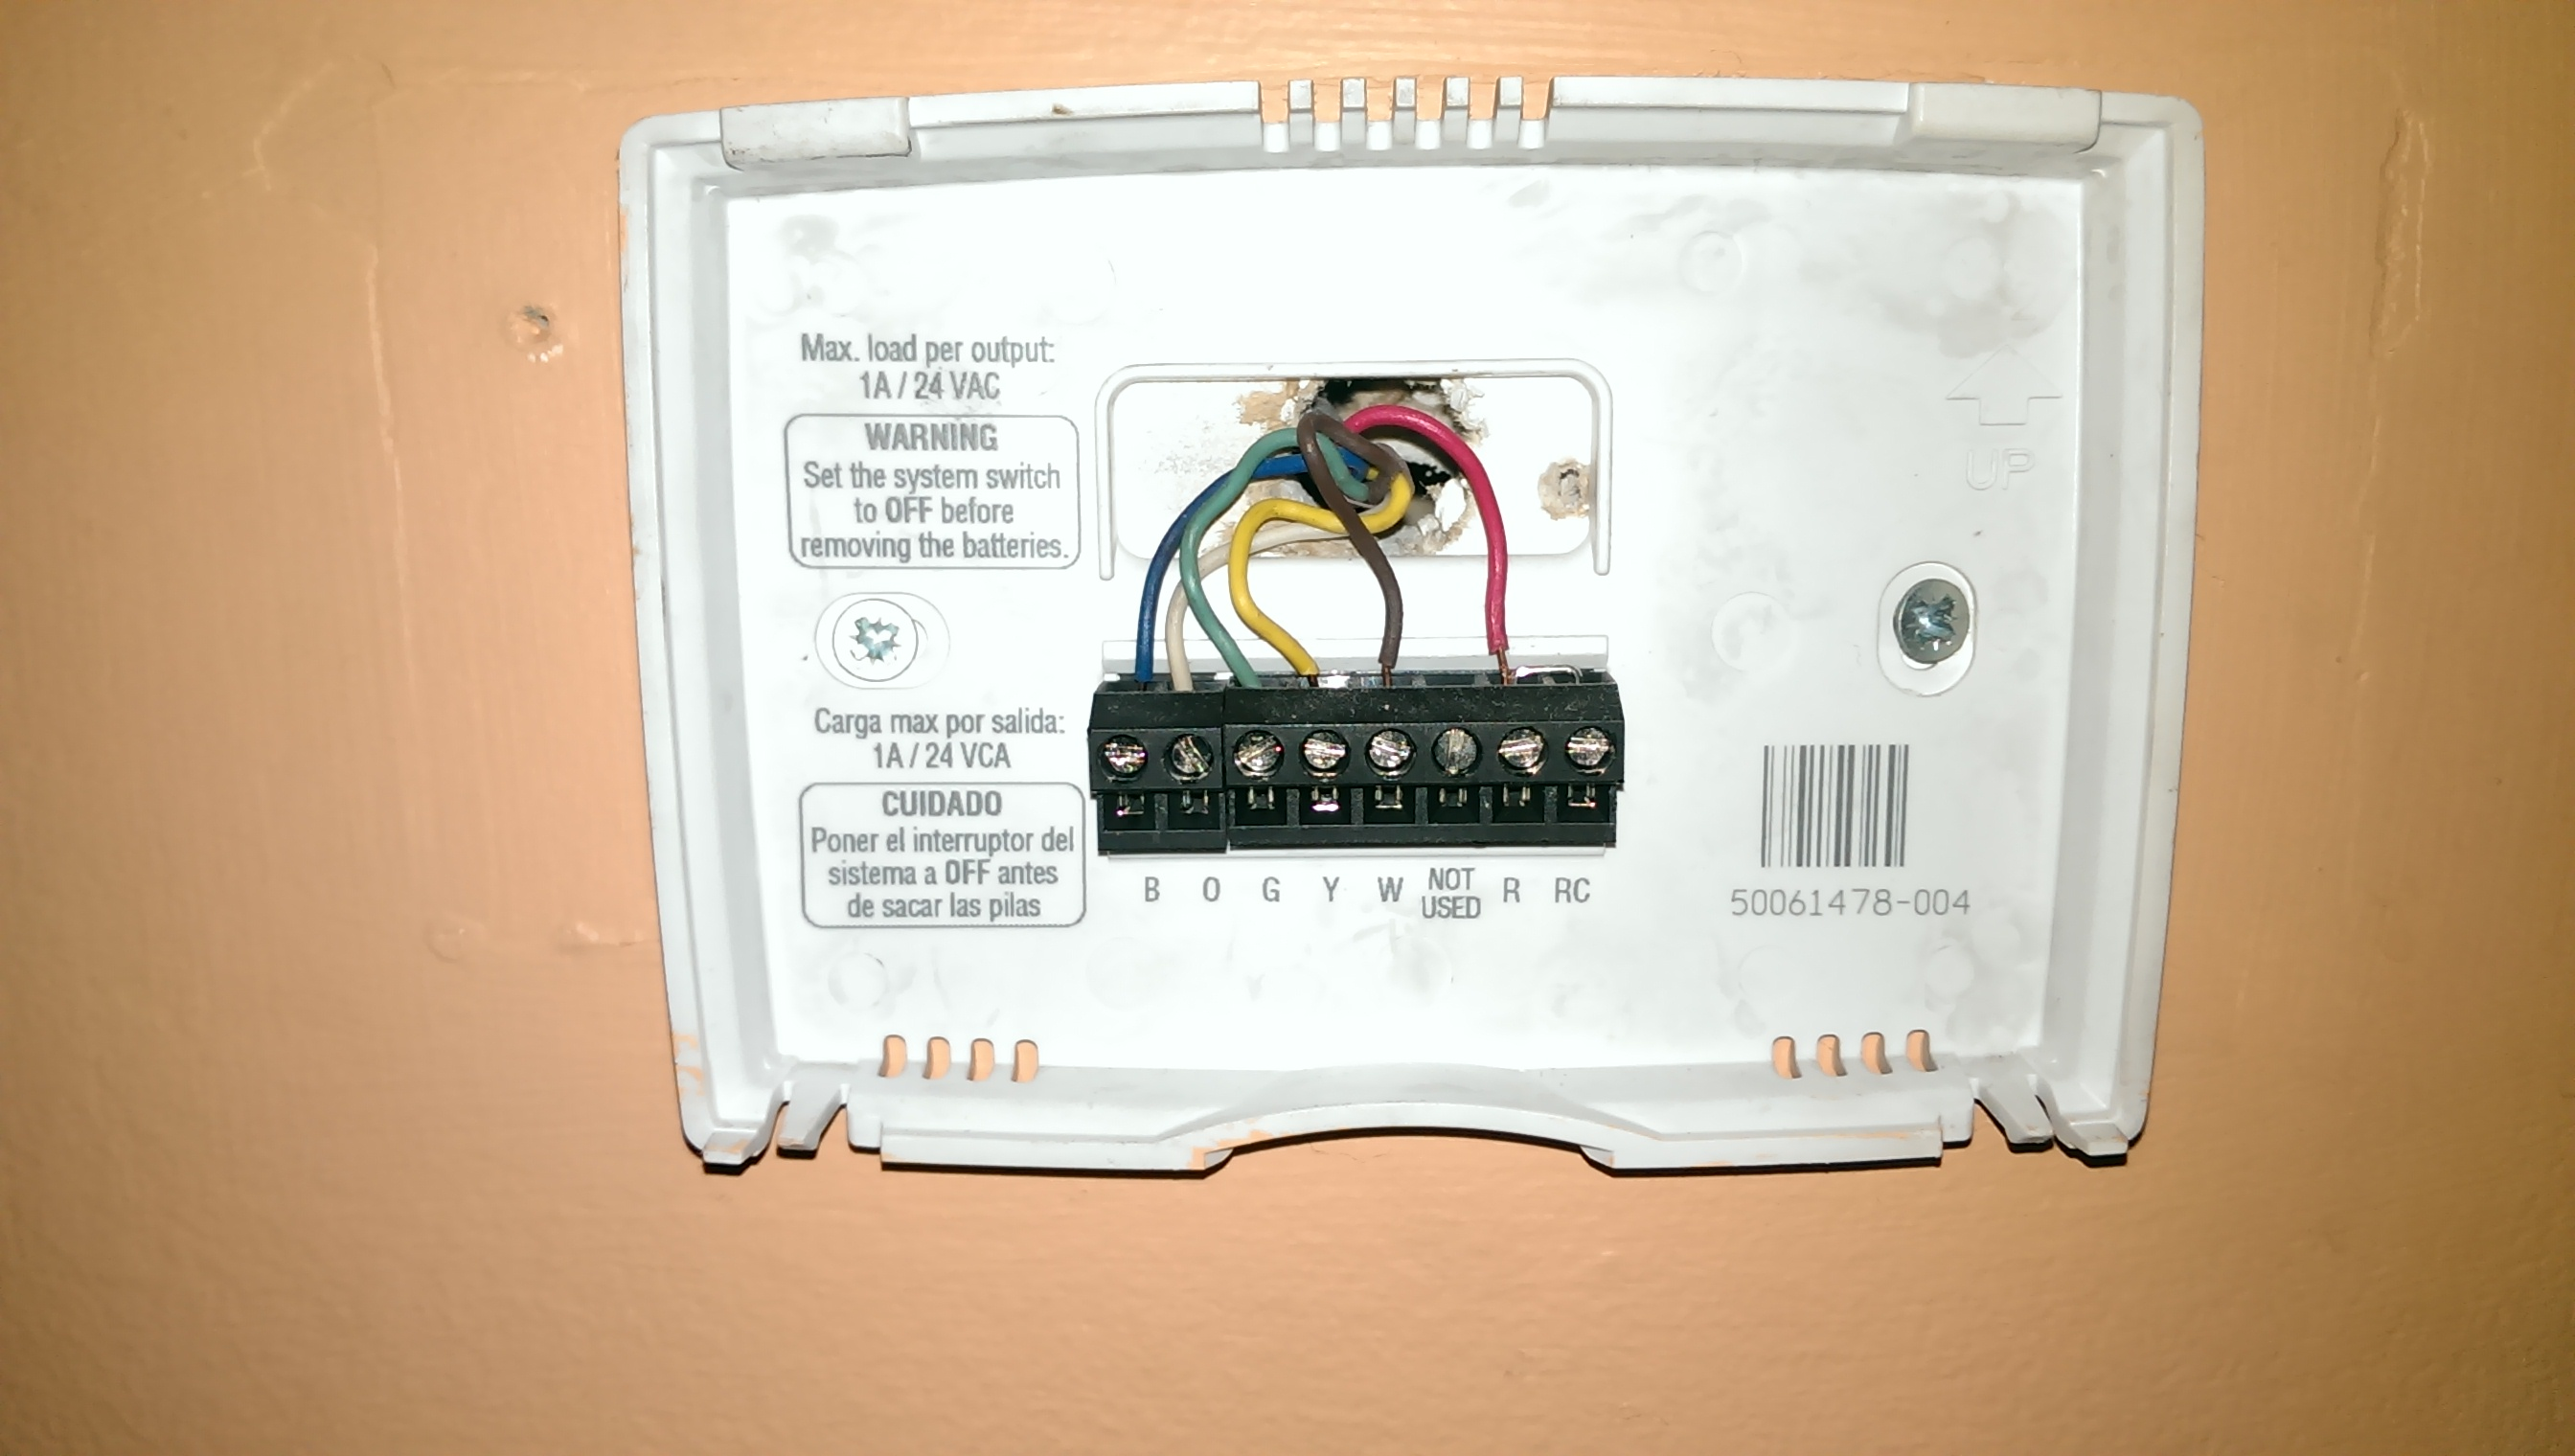 I Have An Old Trane Twv730b140a0 Air Handler In My Condo Unit That White Rodgers Thermostat Wiring 1f82 51 Imag0807imag0807 Imag0655